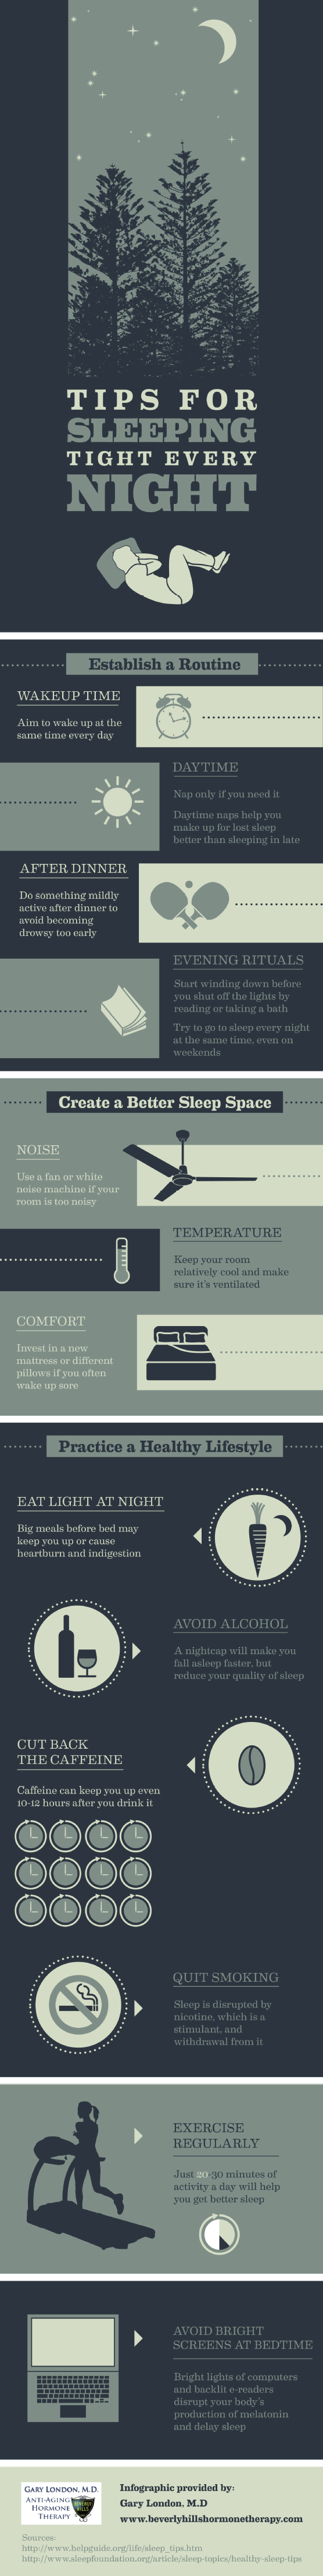 Tips for Sleeping Tight Every Night [Infographic]